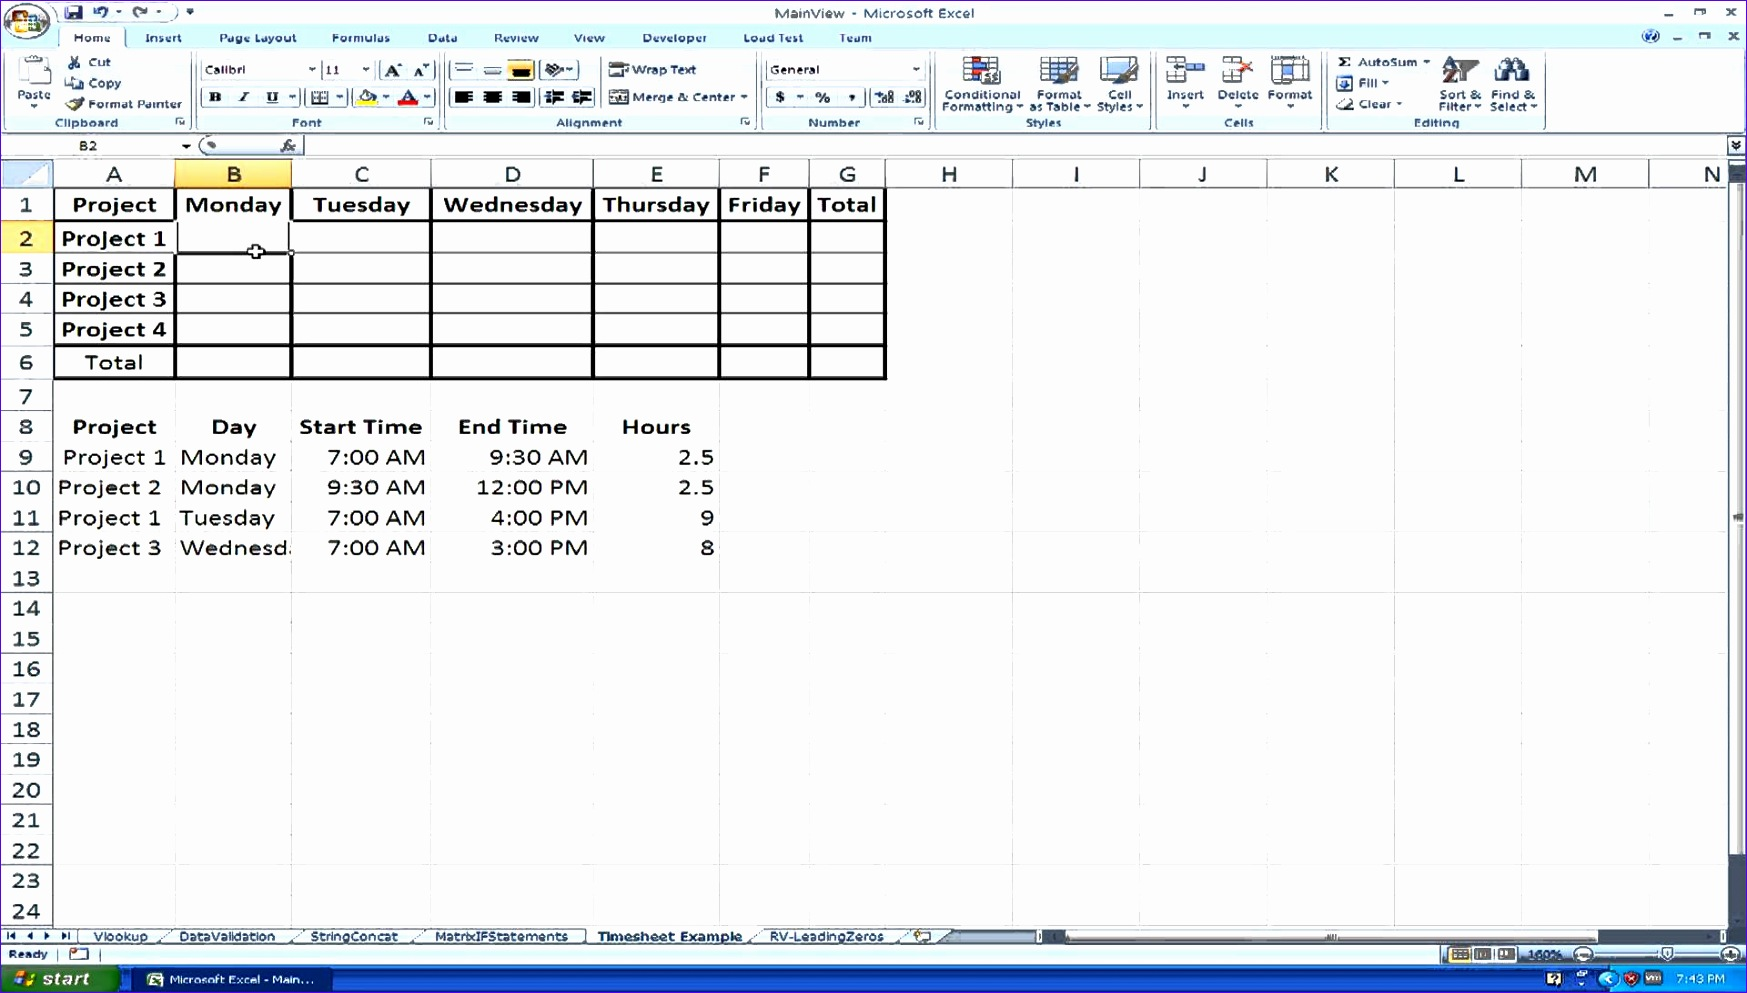 10 timesheet calculator excel template - exceltemplates